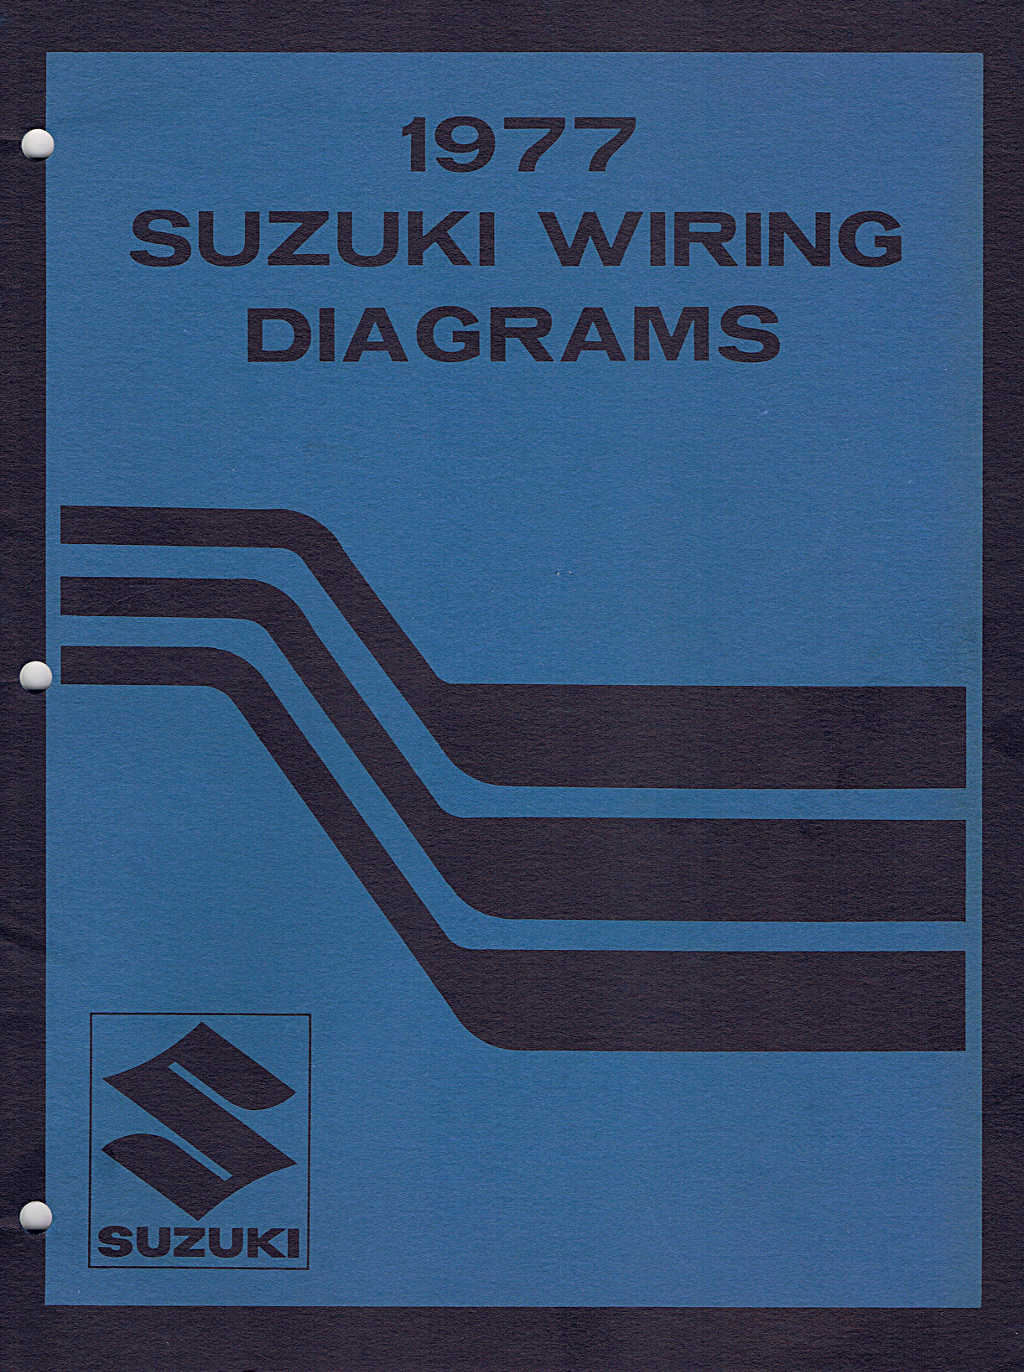 Suzuki Electrical Diagrams Kawasaki Bayou 300 Wiring Diagram Luxury Terrific Intruder 0 This Is A Selection Of That I Have Gathered Together In One Location Just For Ease Reference Dont Sell Them Nor Do Supply